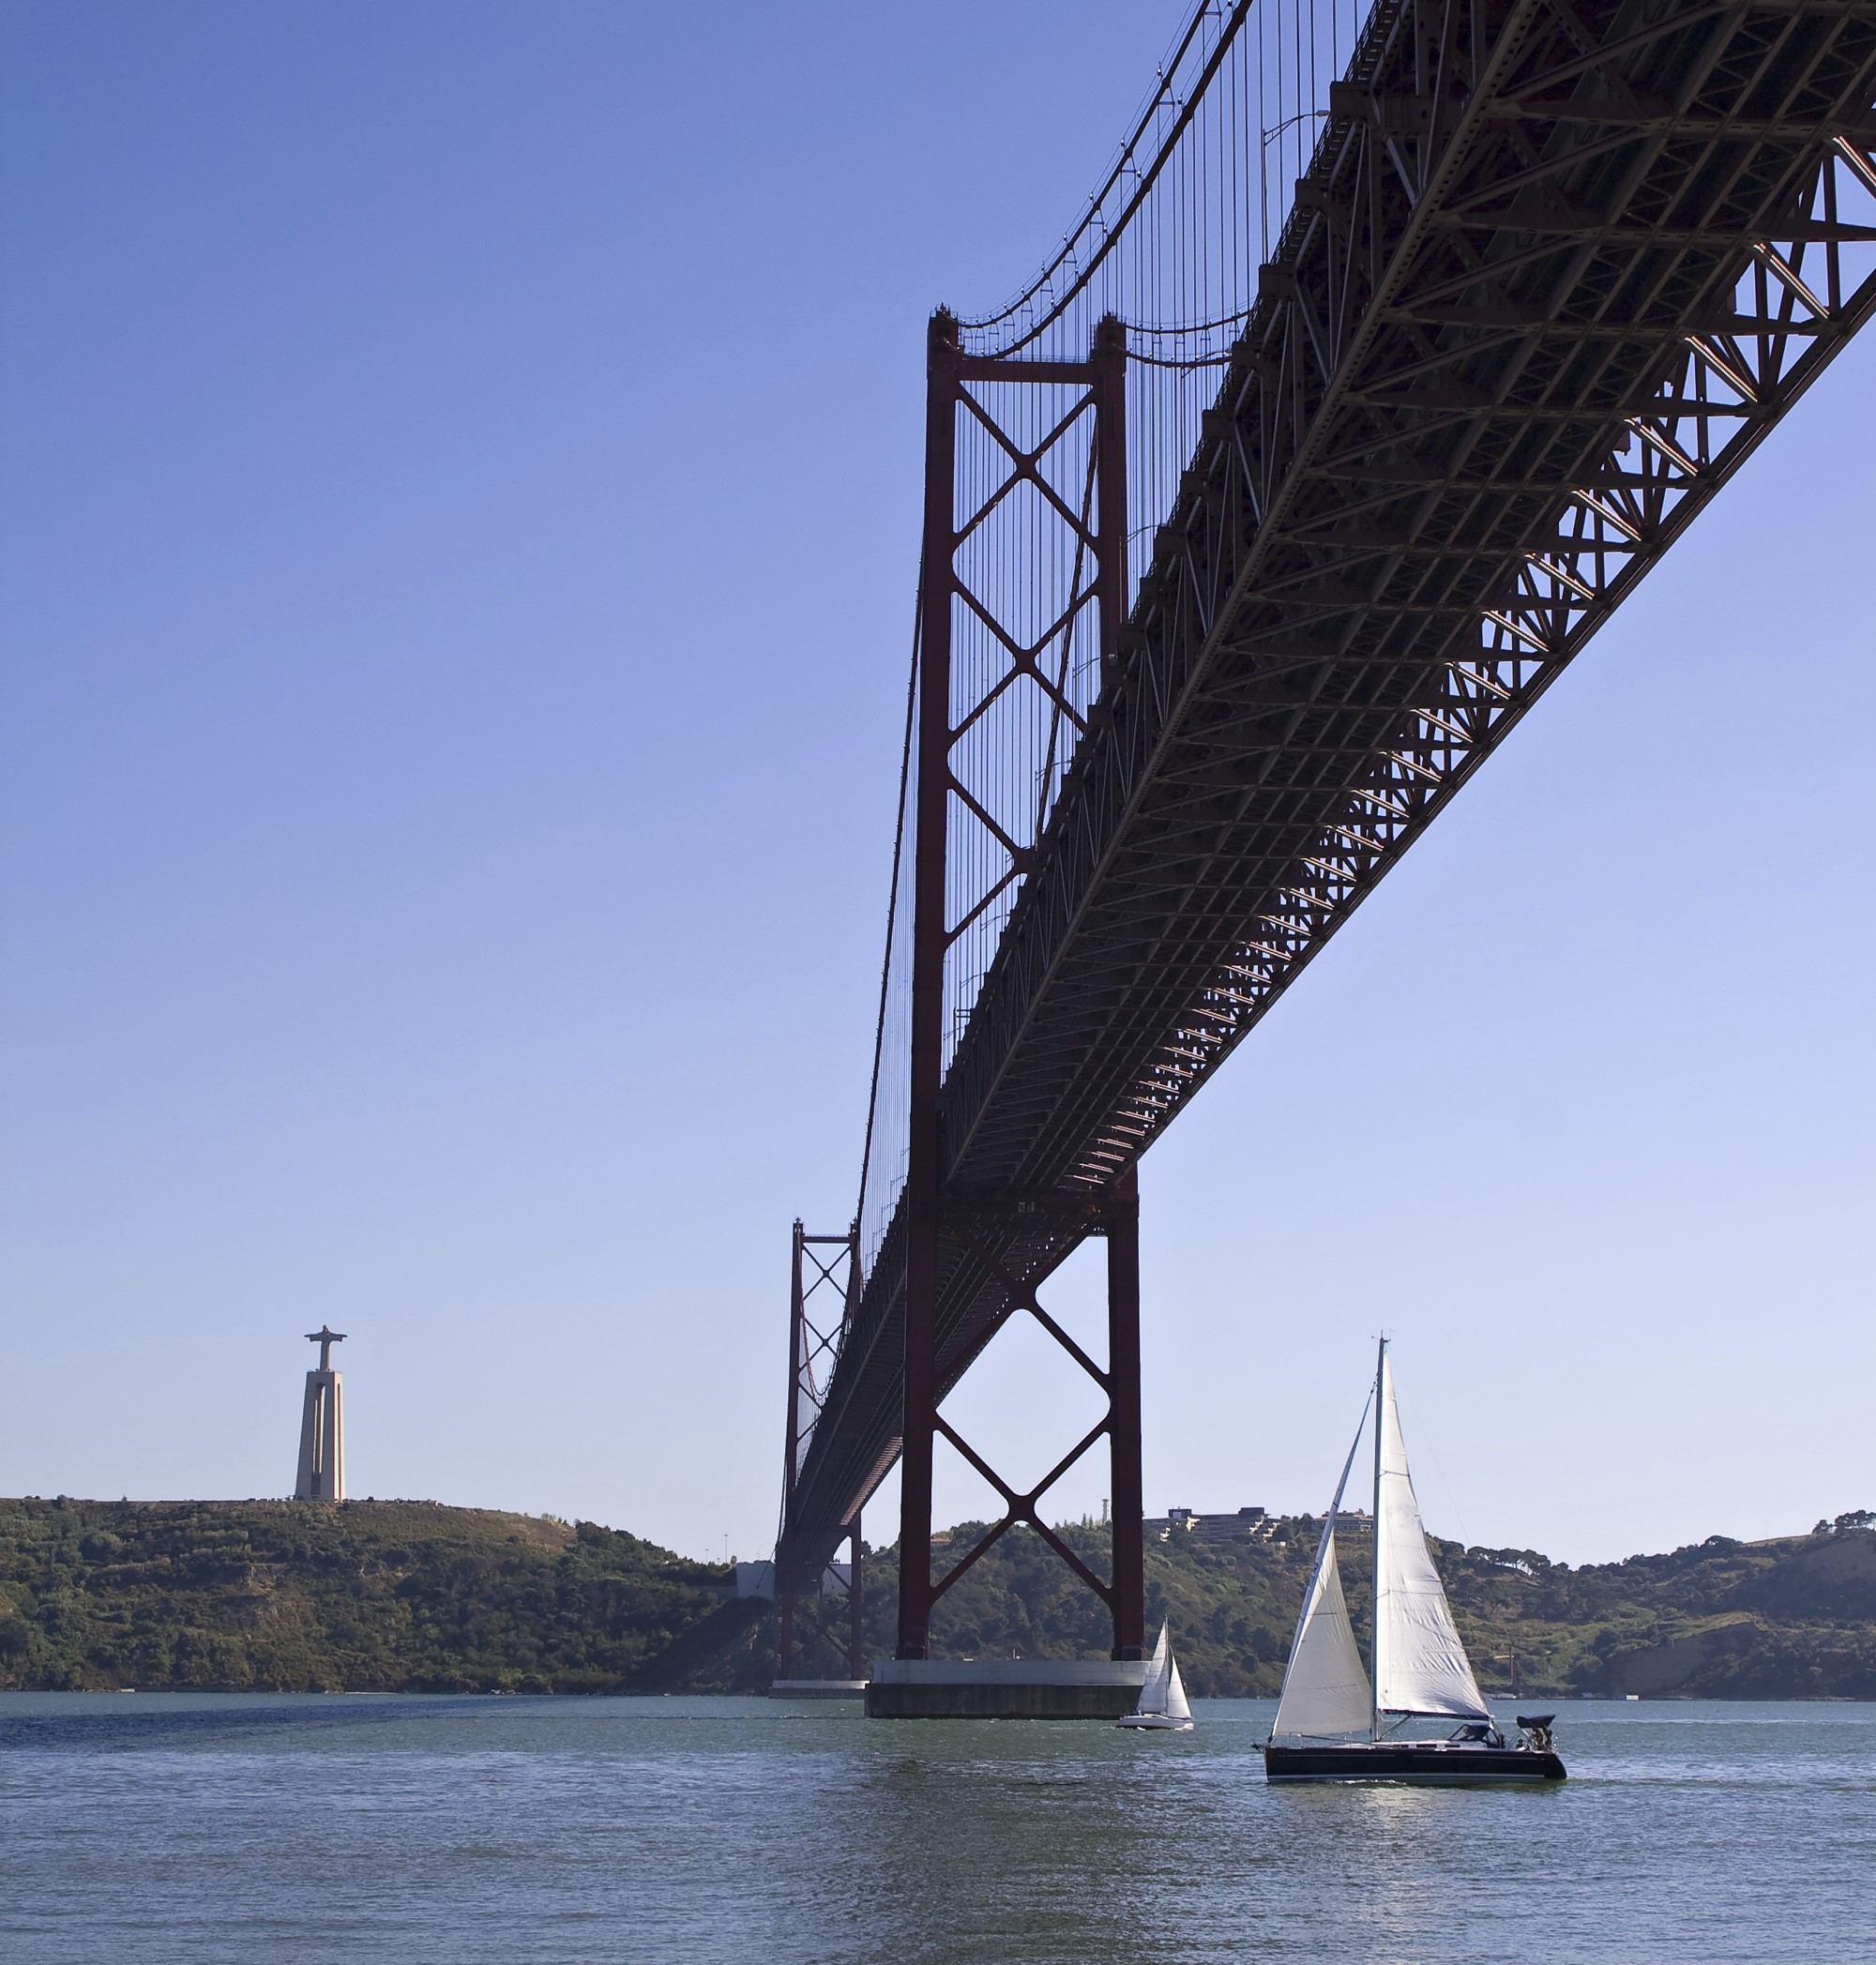 Sailing over Suspencion Bridge over the Tagus river in Lisbon,